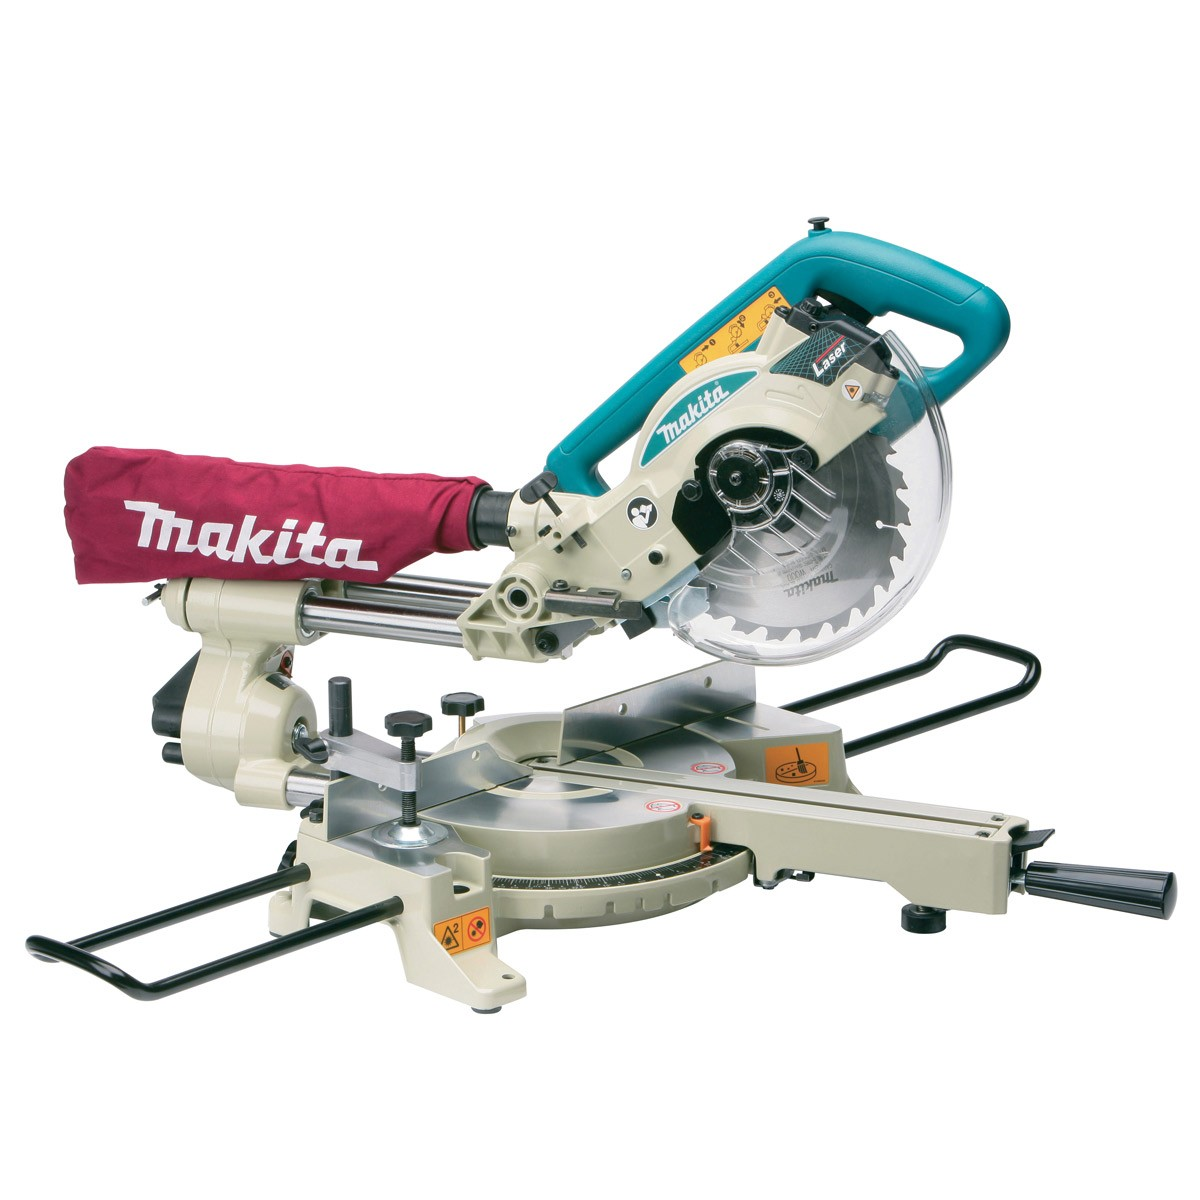 Makita LS0714 190mm Slide Compound Mitre Saw 240v